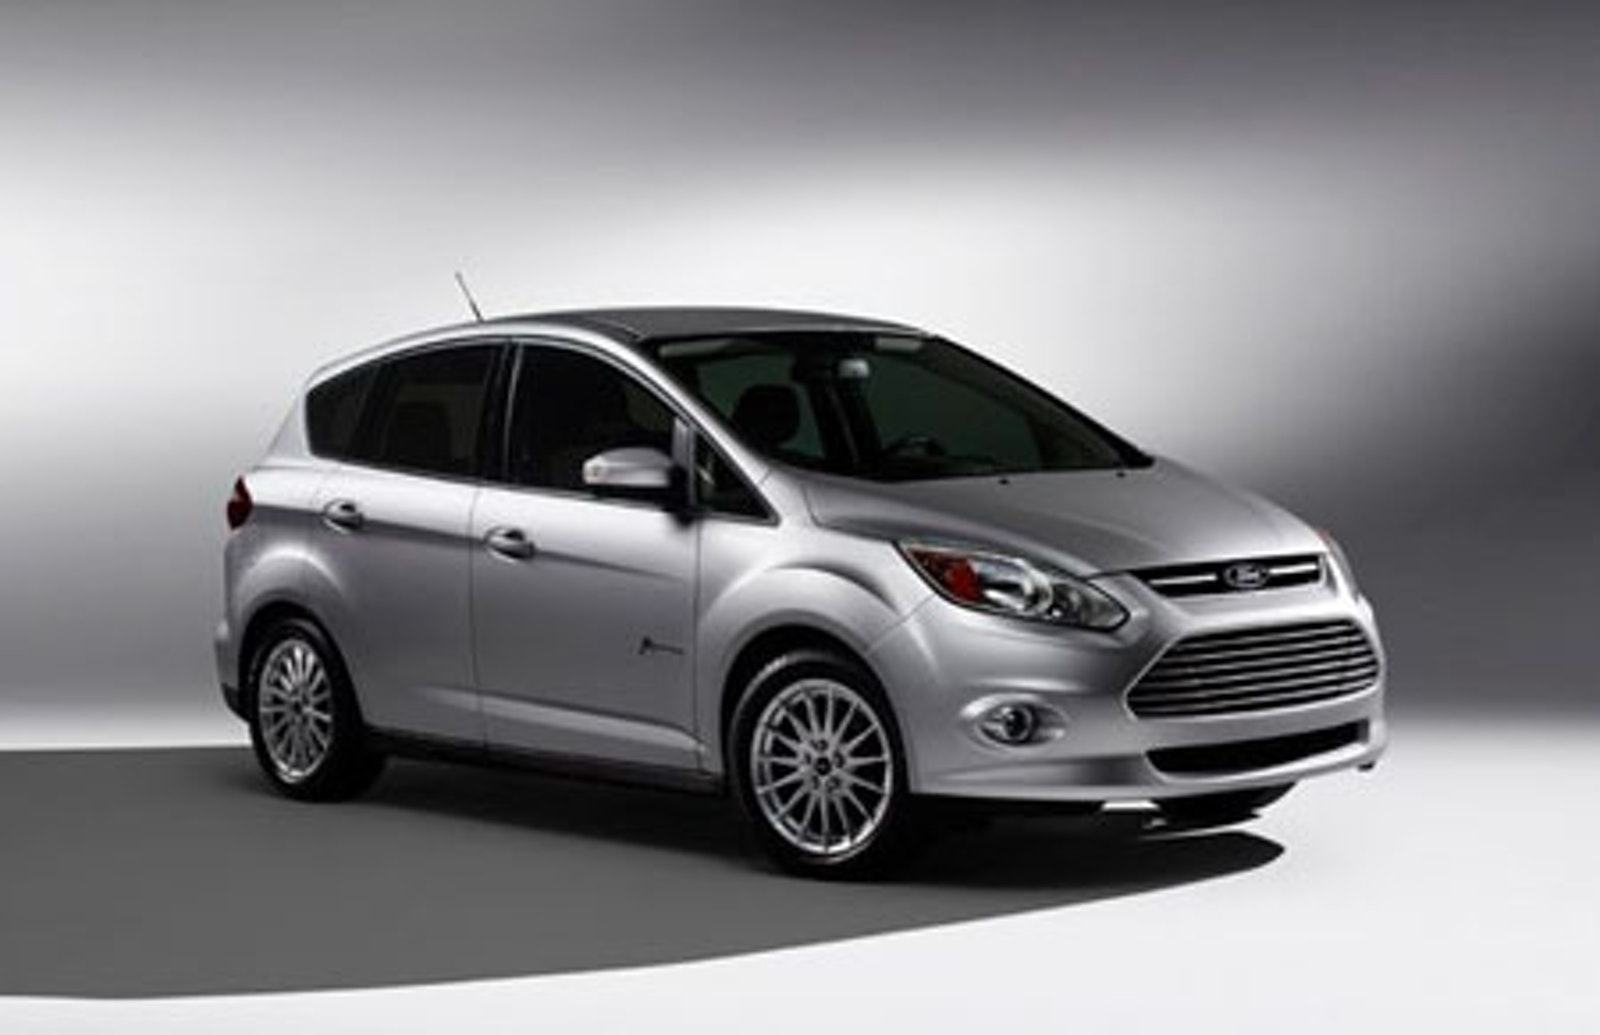 Ge To Purchase 2 000 Ford C Max Energi Plug In Hybrids